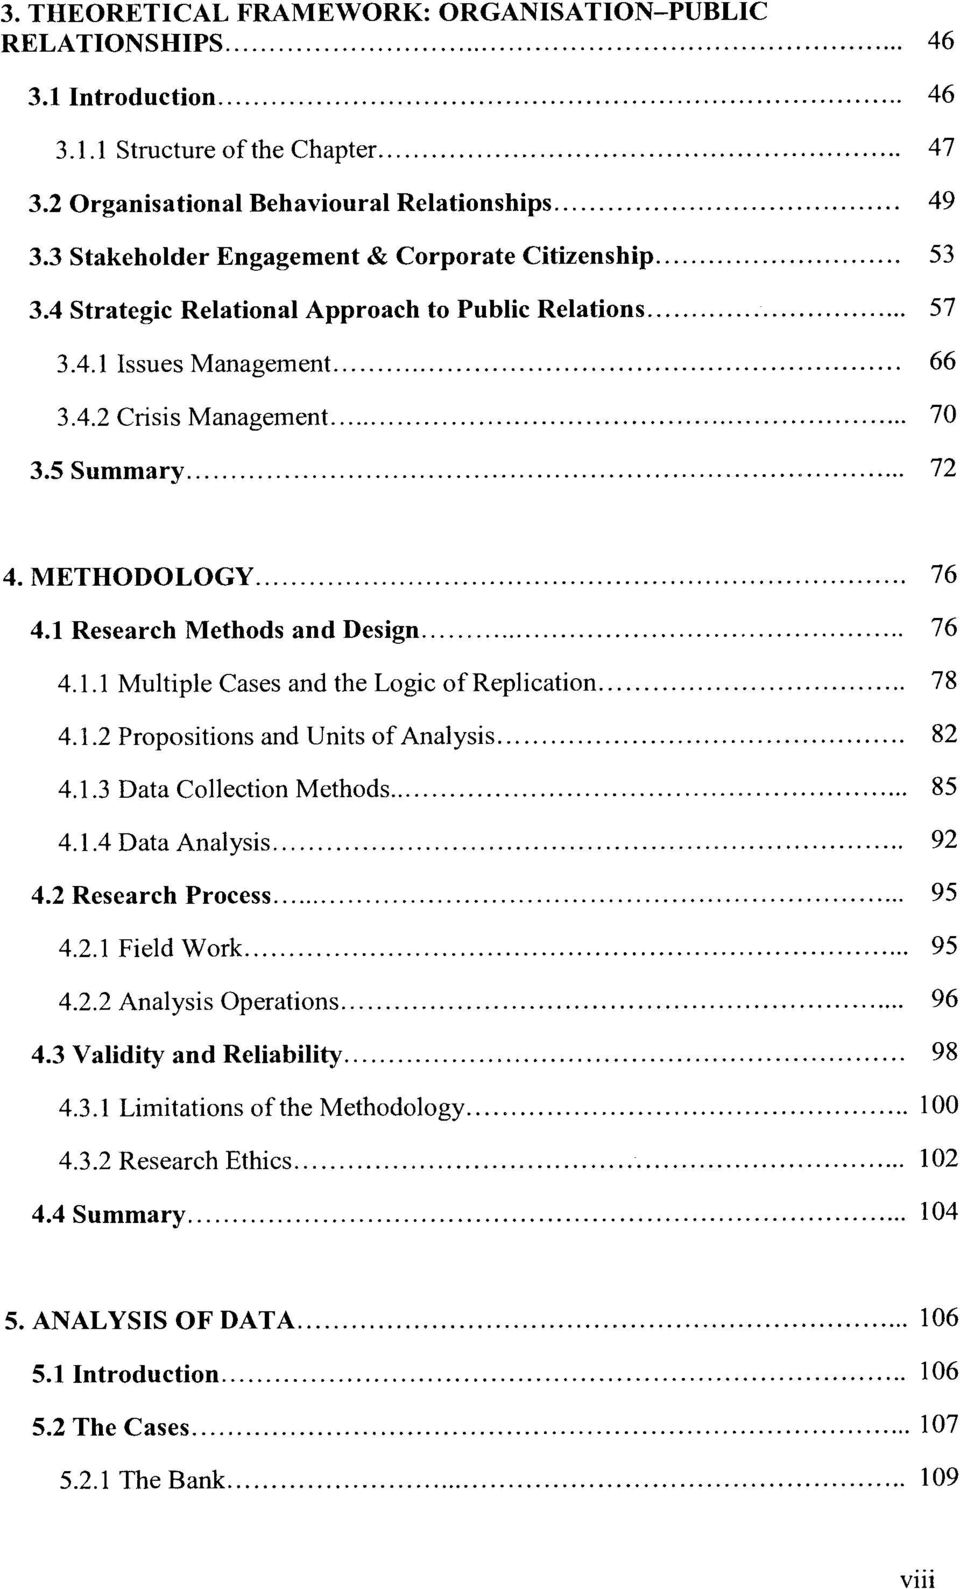 METHODOLOGY... 76 4.1 Research Methods and Design... 76 4.1.1 Multiple Cases and the Logic of Replication... 78 4.1.2 Propositions and Units of Analysis... 82 4.1.3 Data Collection Methods... 85 4.1.4 Data Analysis.